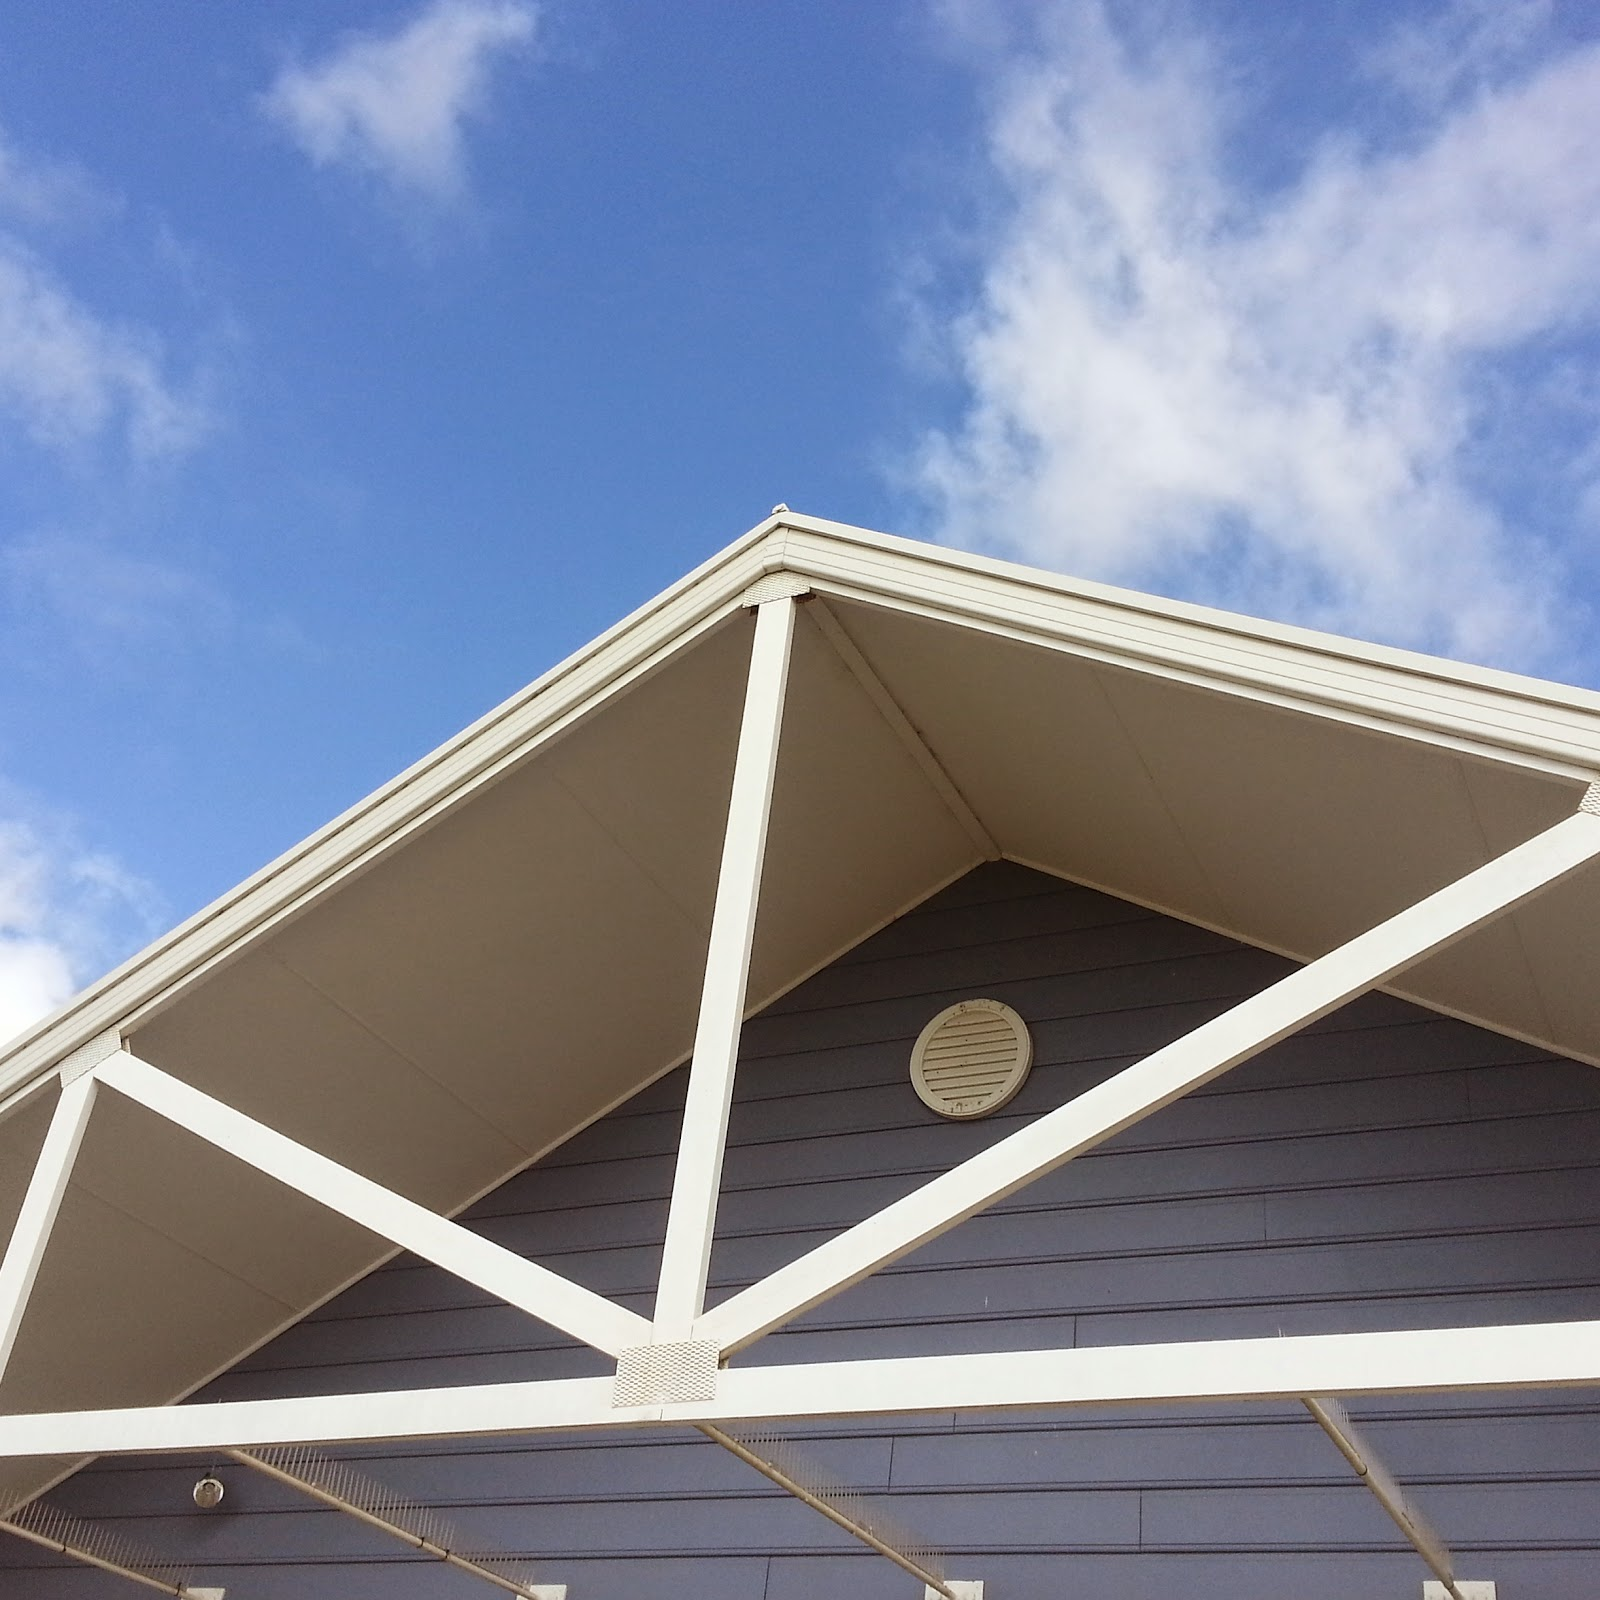 image of roof line of blue beachouse and blue skty with whispy white clouds on a sunny day